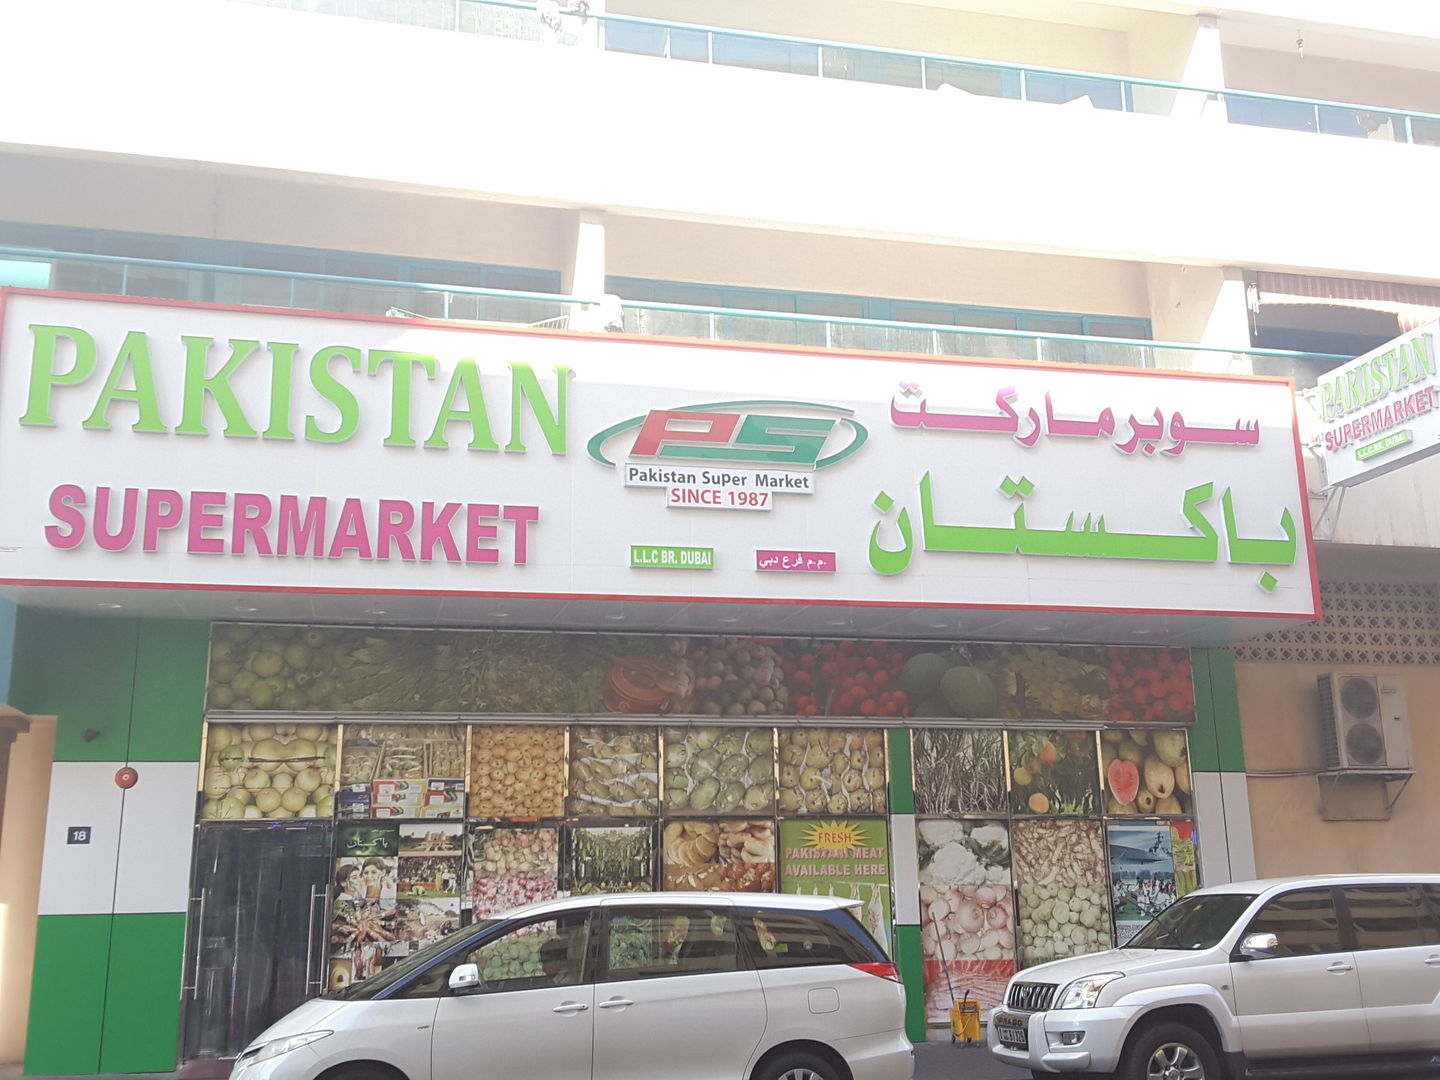 HiDubai-business-pakistan-supermarket-shopping-supermarkets-hypermarkets-grocery-stores-al-karama-dubai-2